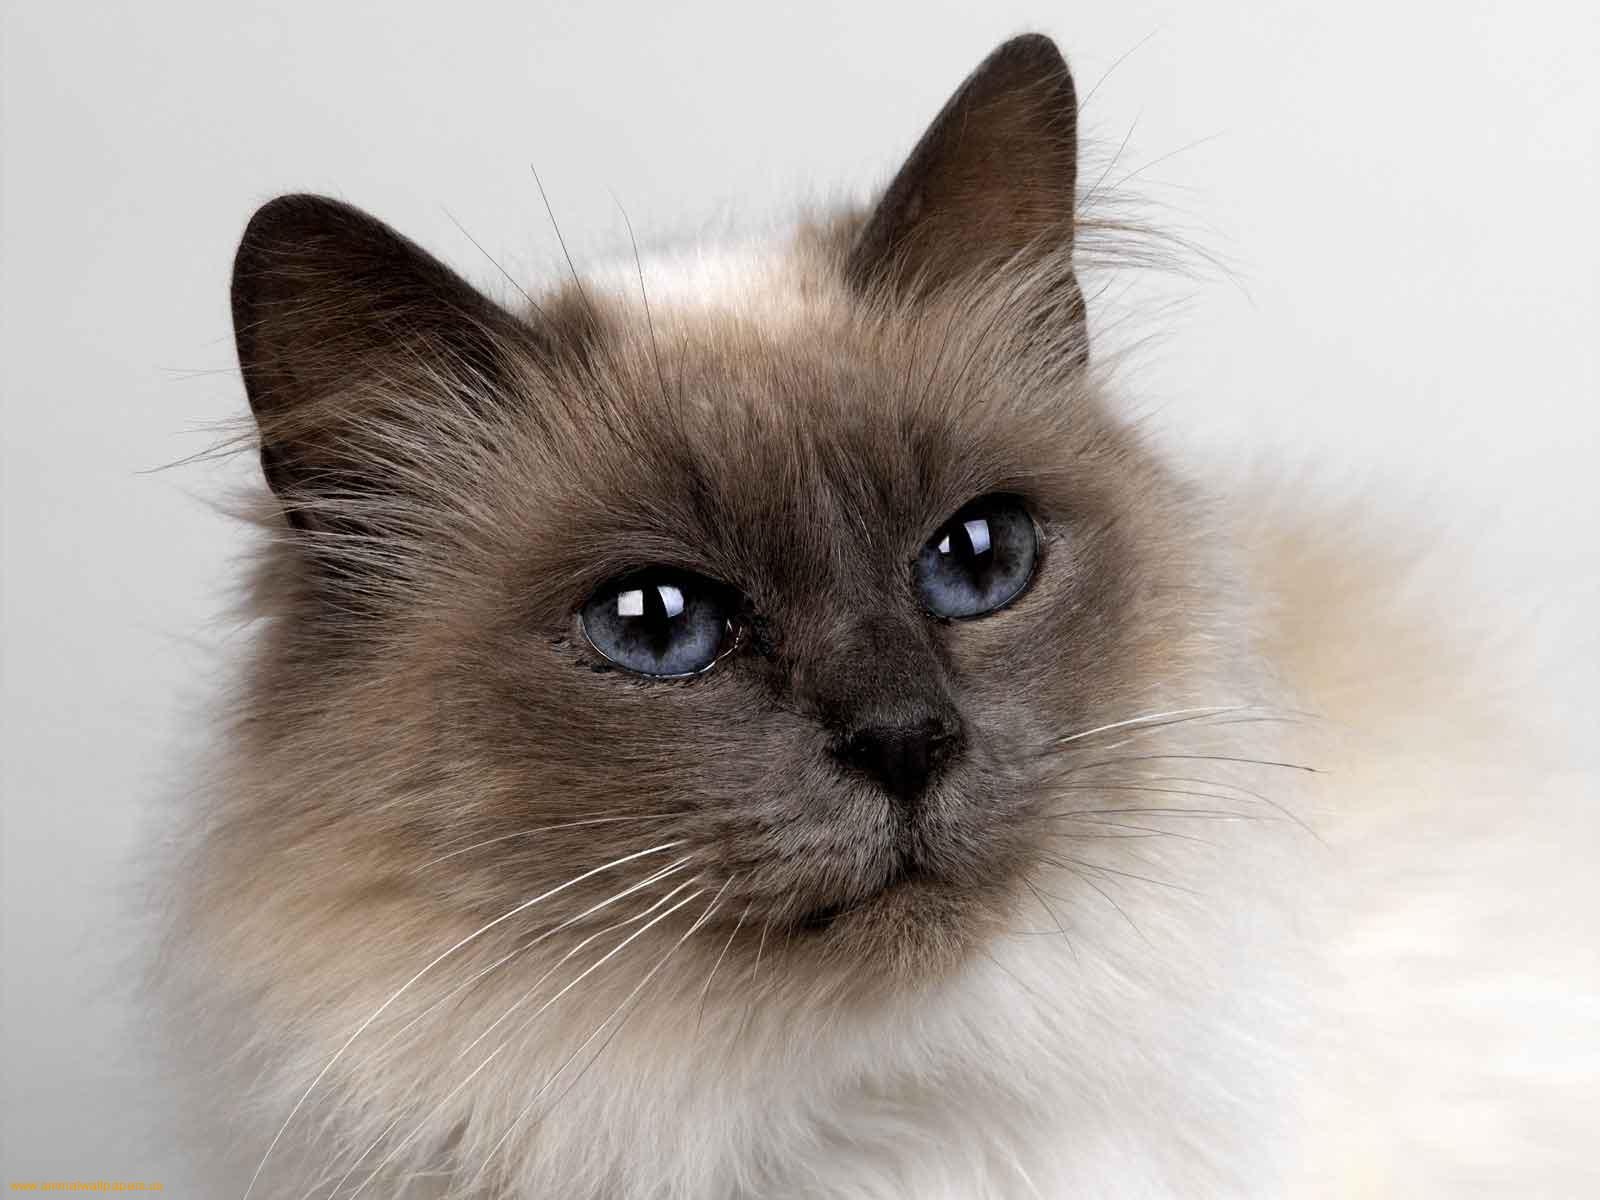 Homes wanted for Siamese cats  UKSiamese cat Rescue